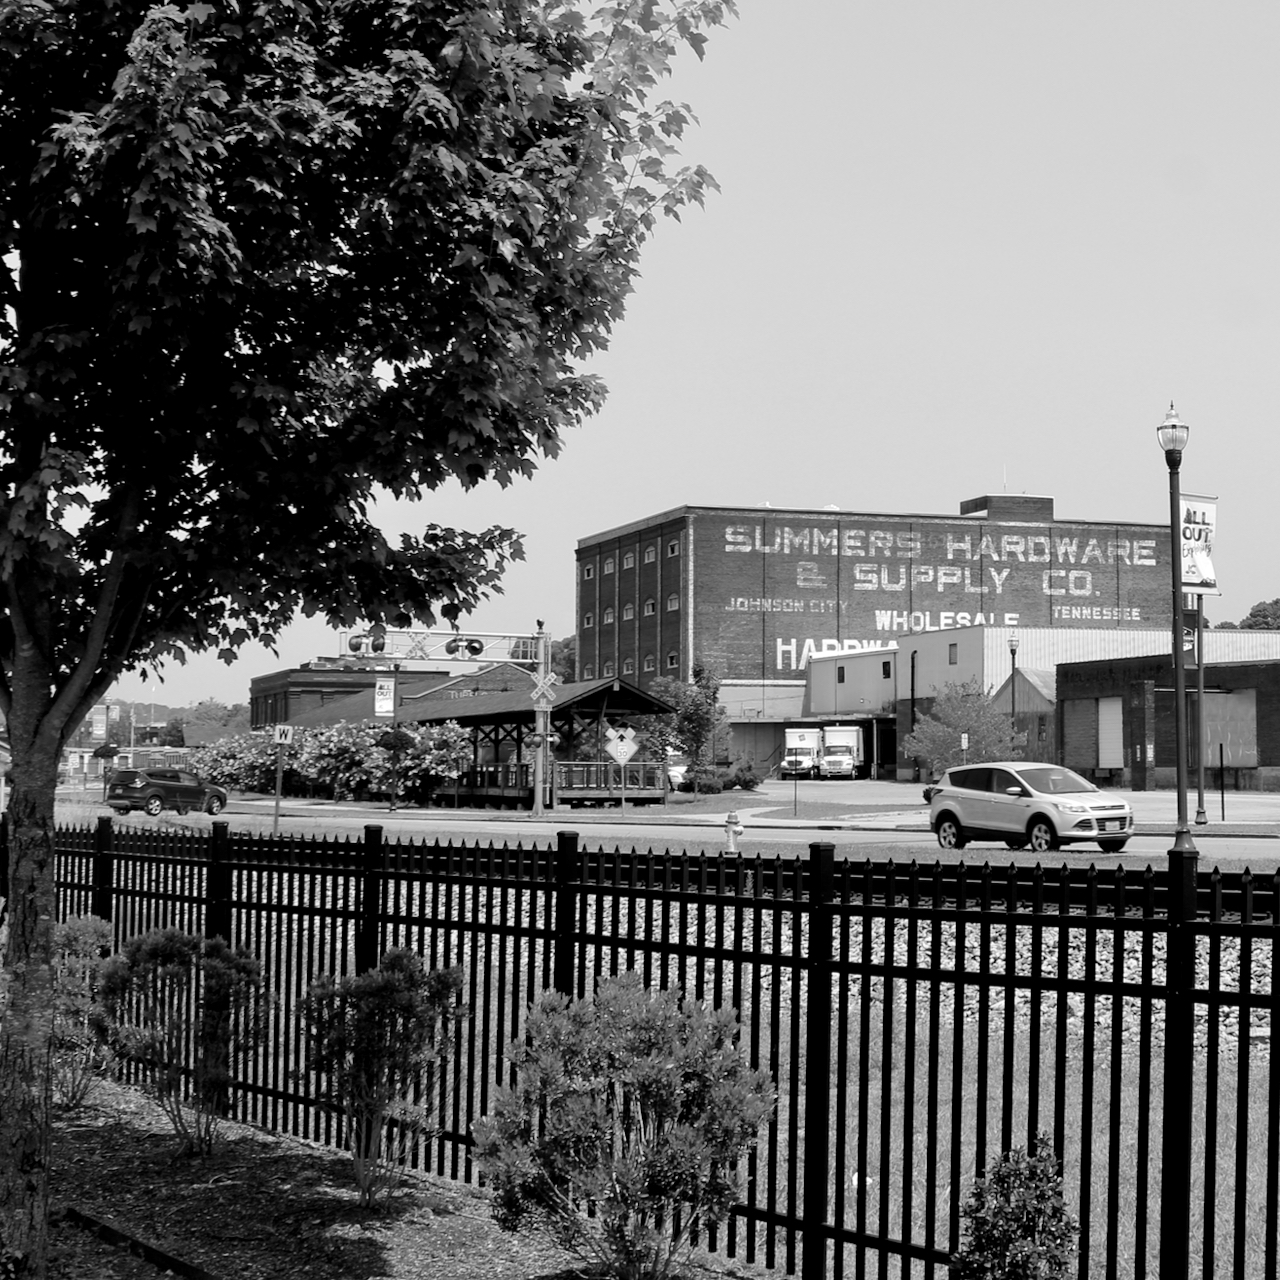 Monochrome Monday — Views from FoundersPark